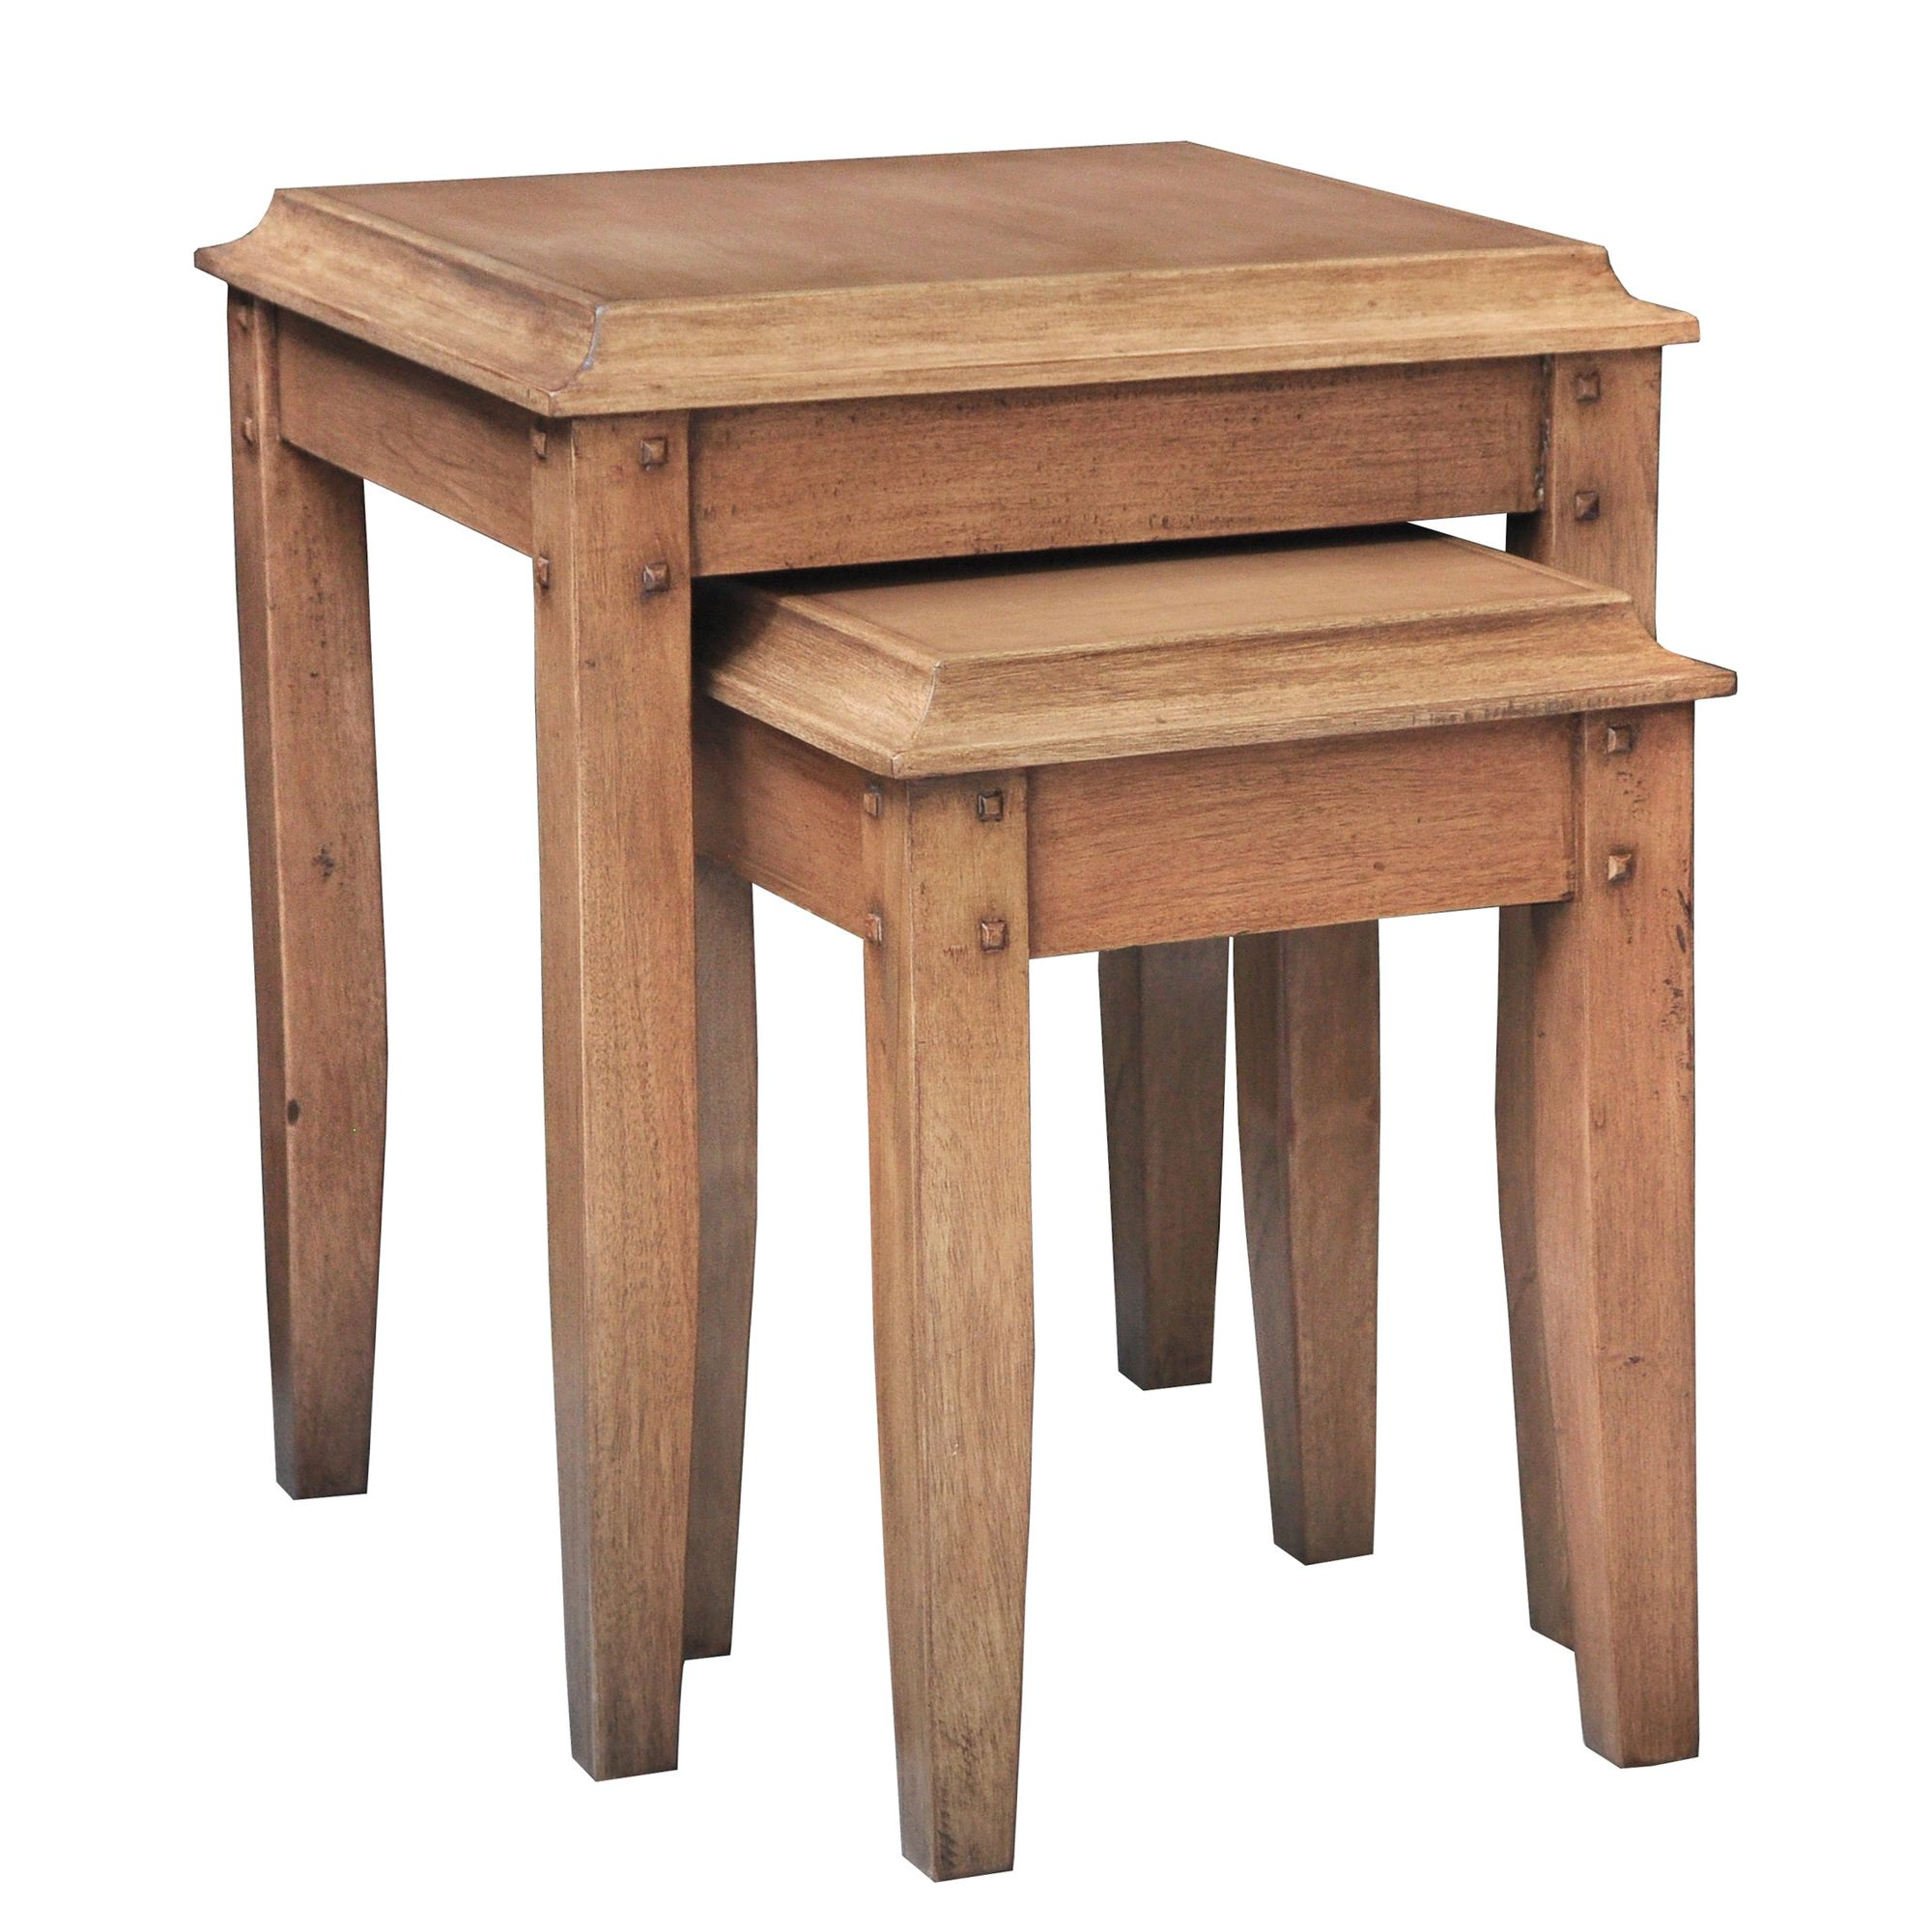 Lock stock and barrel Shell Knowle Nesting Table in Mahogany at Tesco Direct